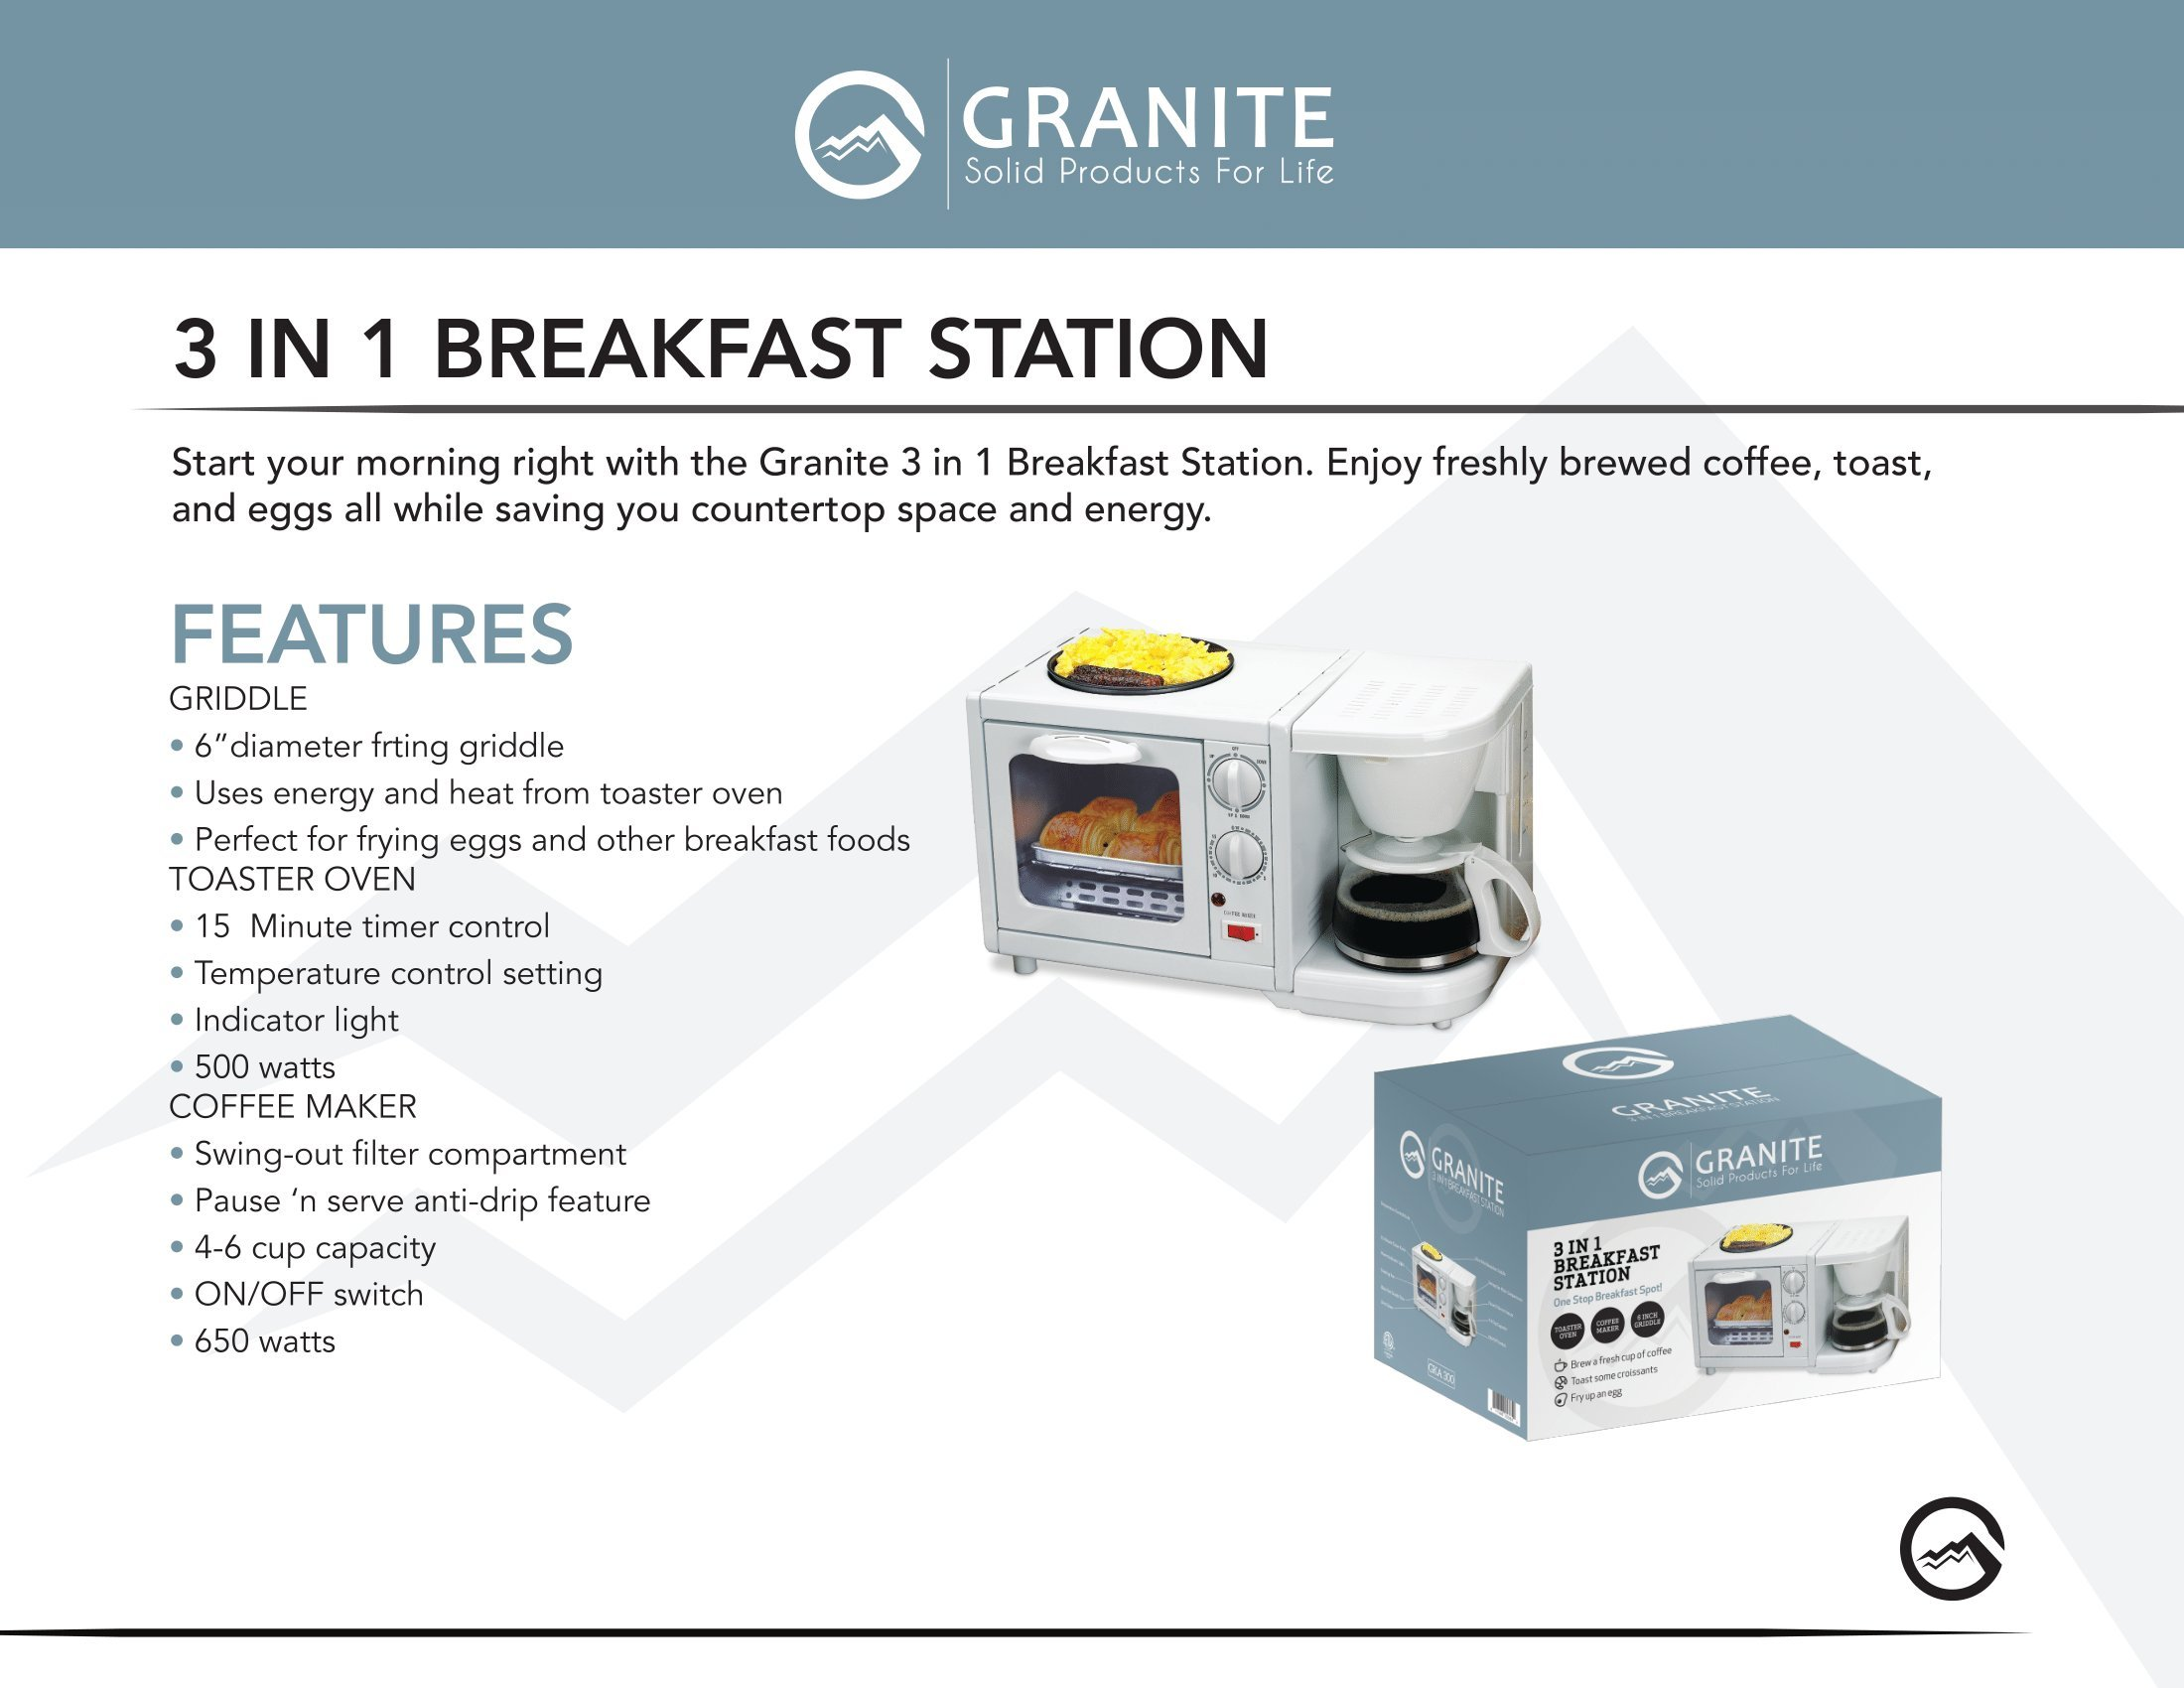 Granite Platinum Deluxe Portable 3-in-1 Family Size Multifunctional Breakfast Station by Granite (Image #3)